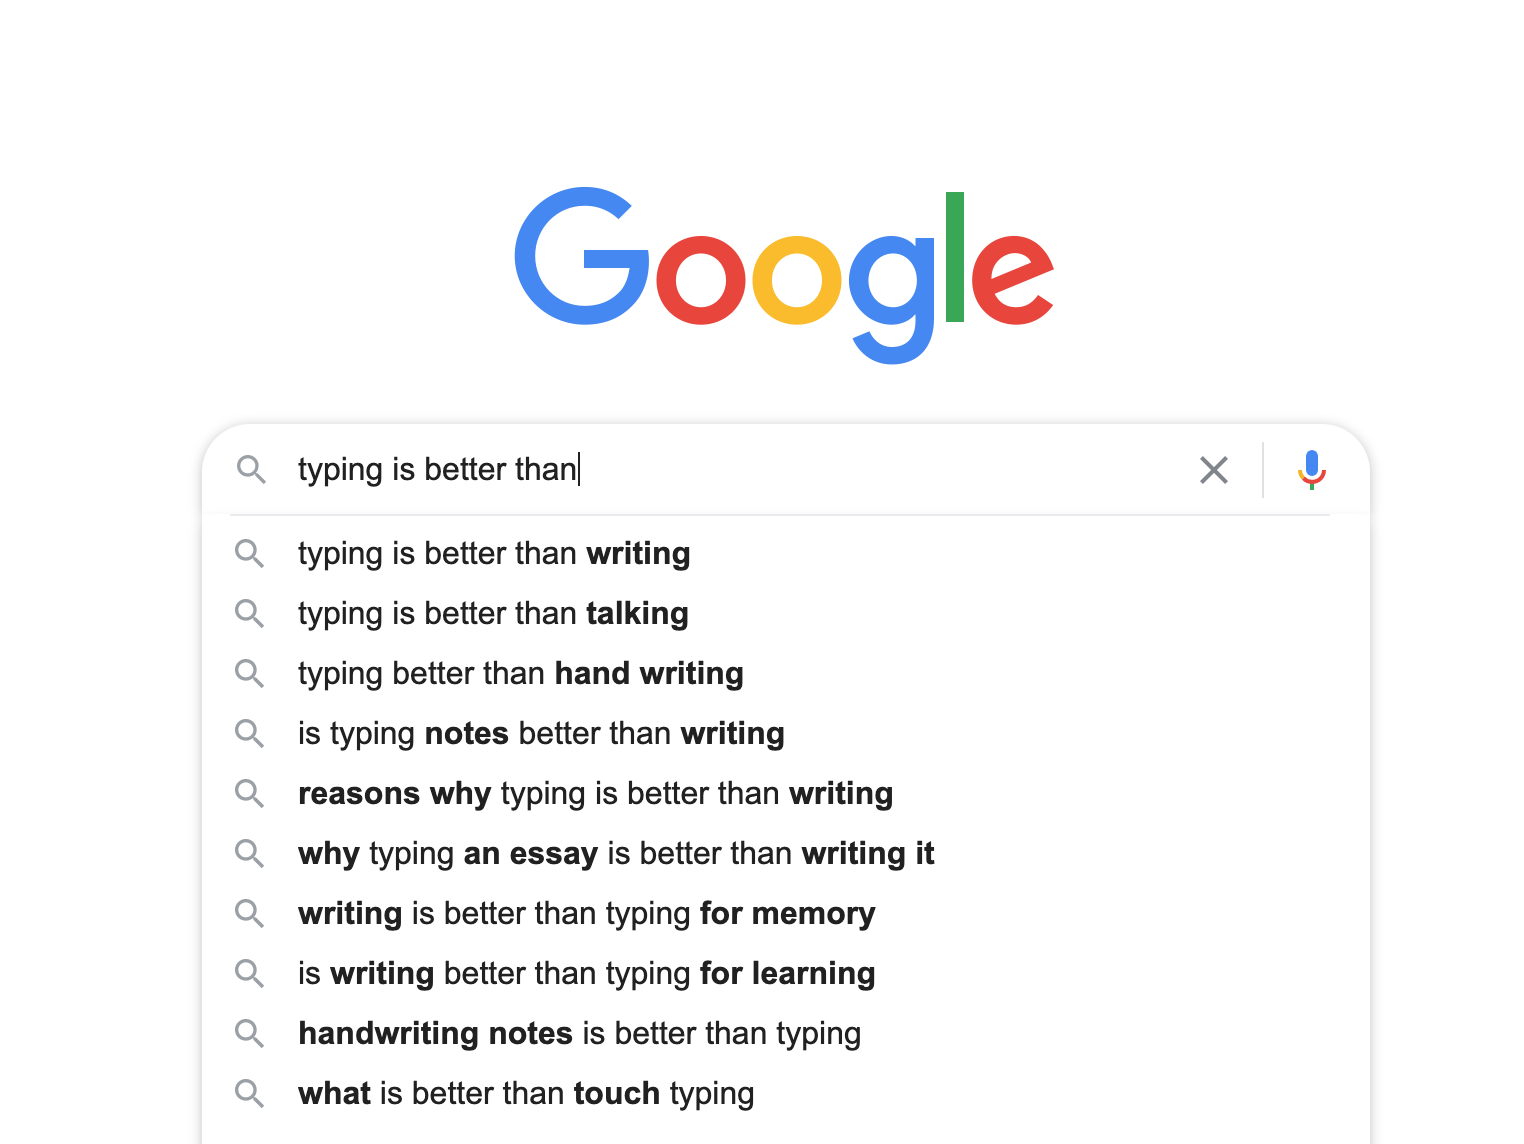 Is typing better than handwriting?